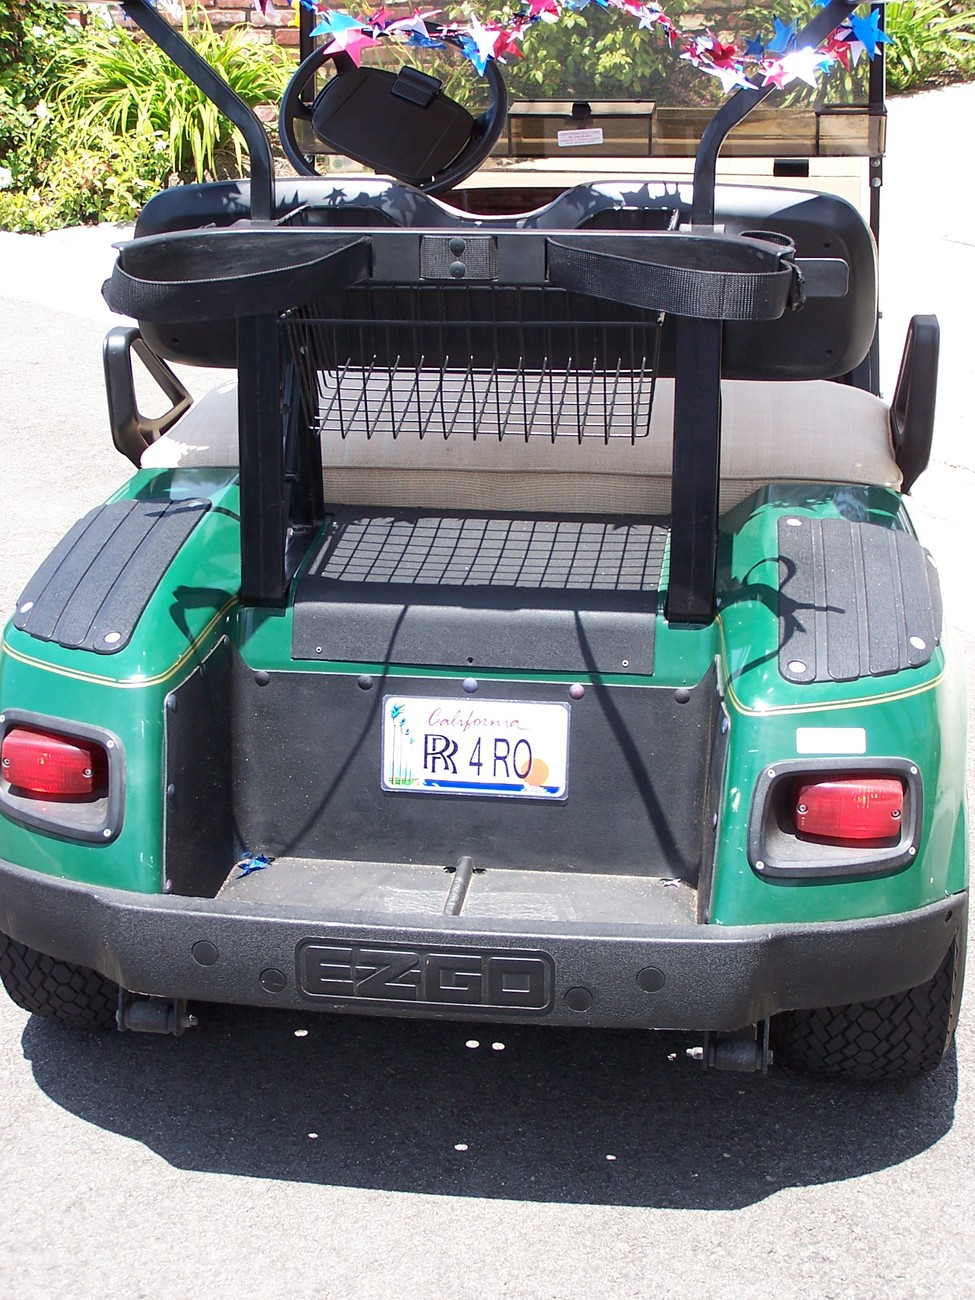 Custom Personalized Arizona golf cart, mobility scooter or go cart license plate